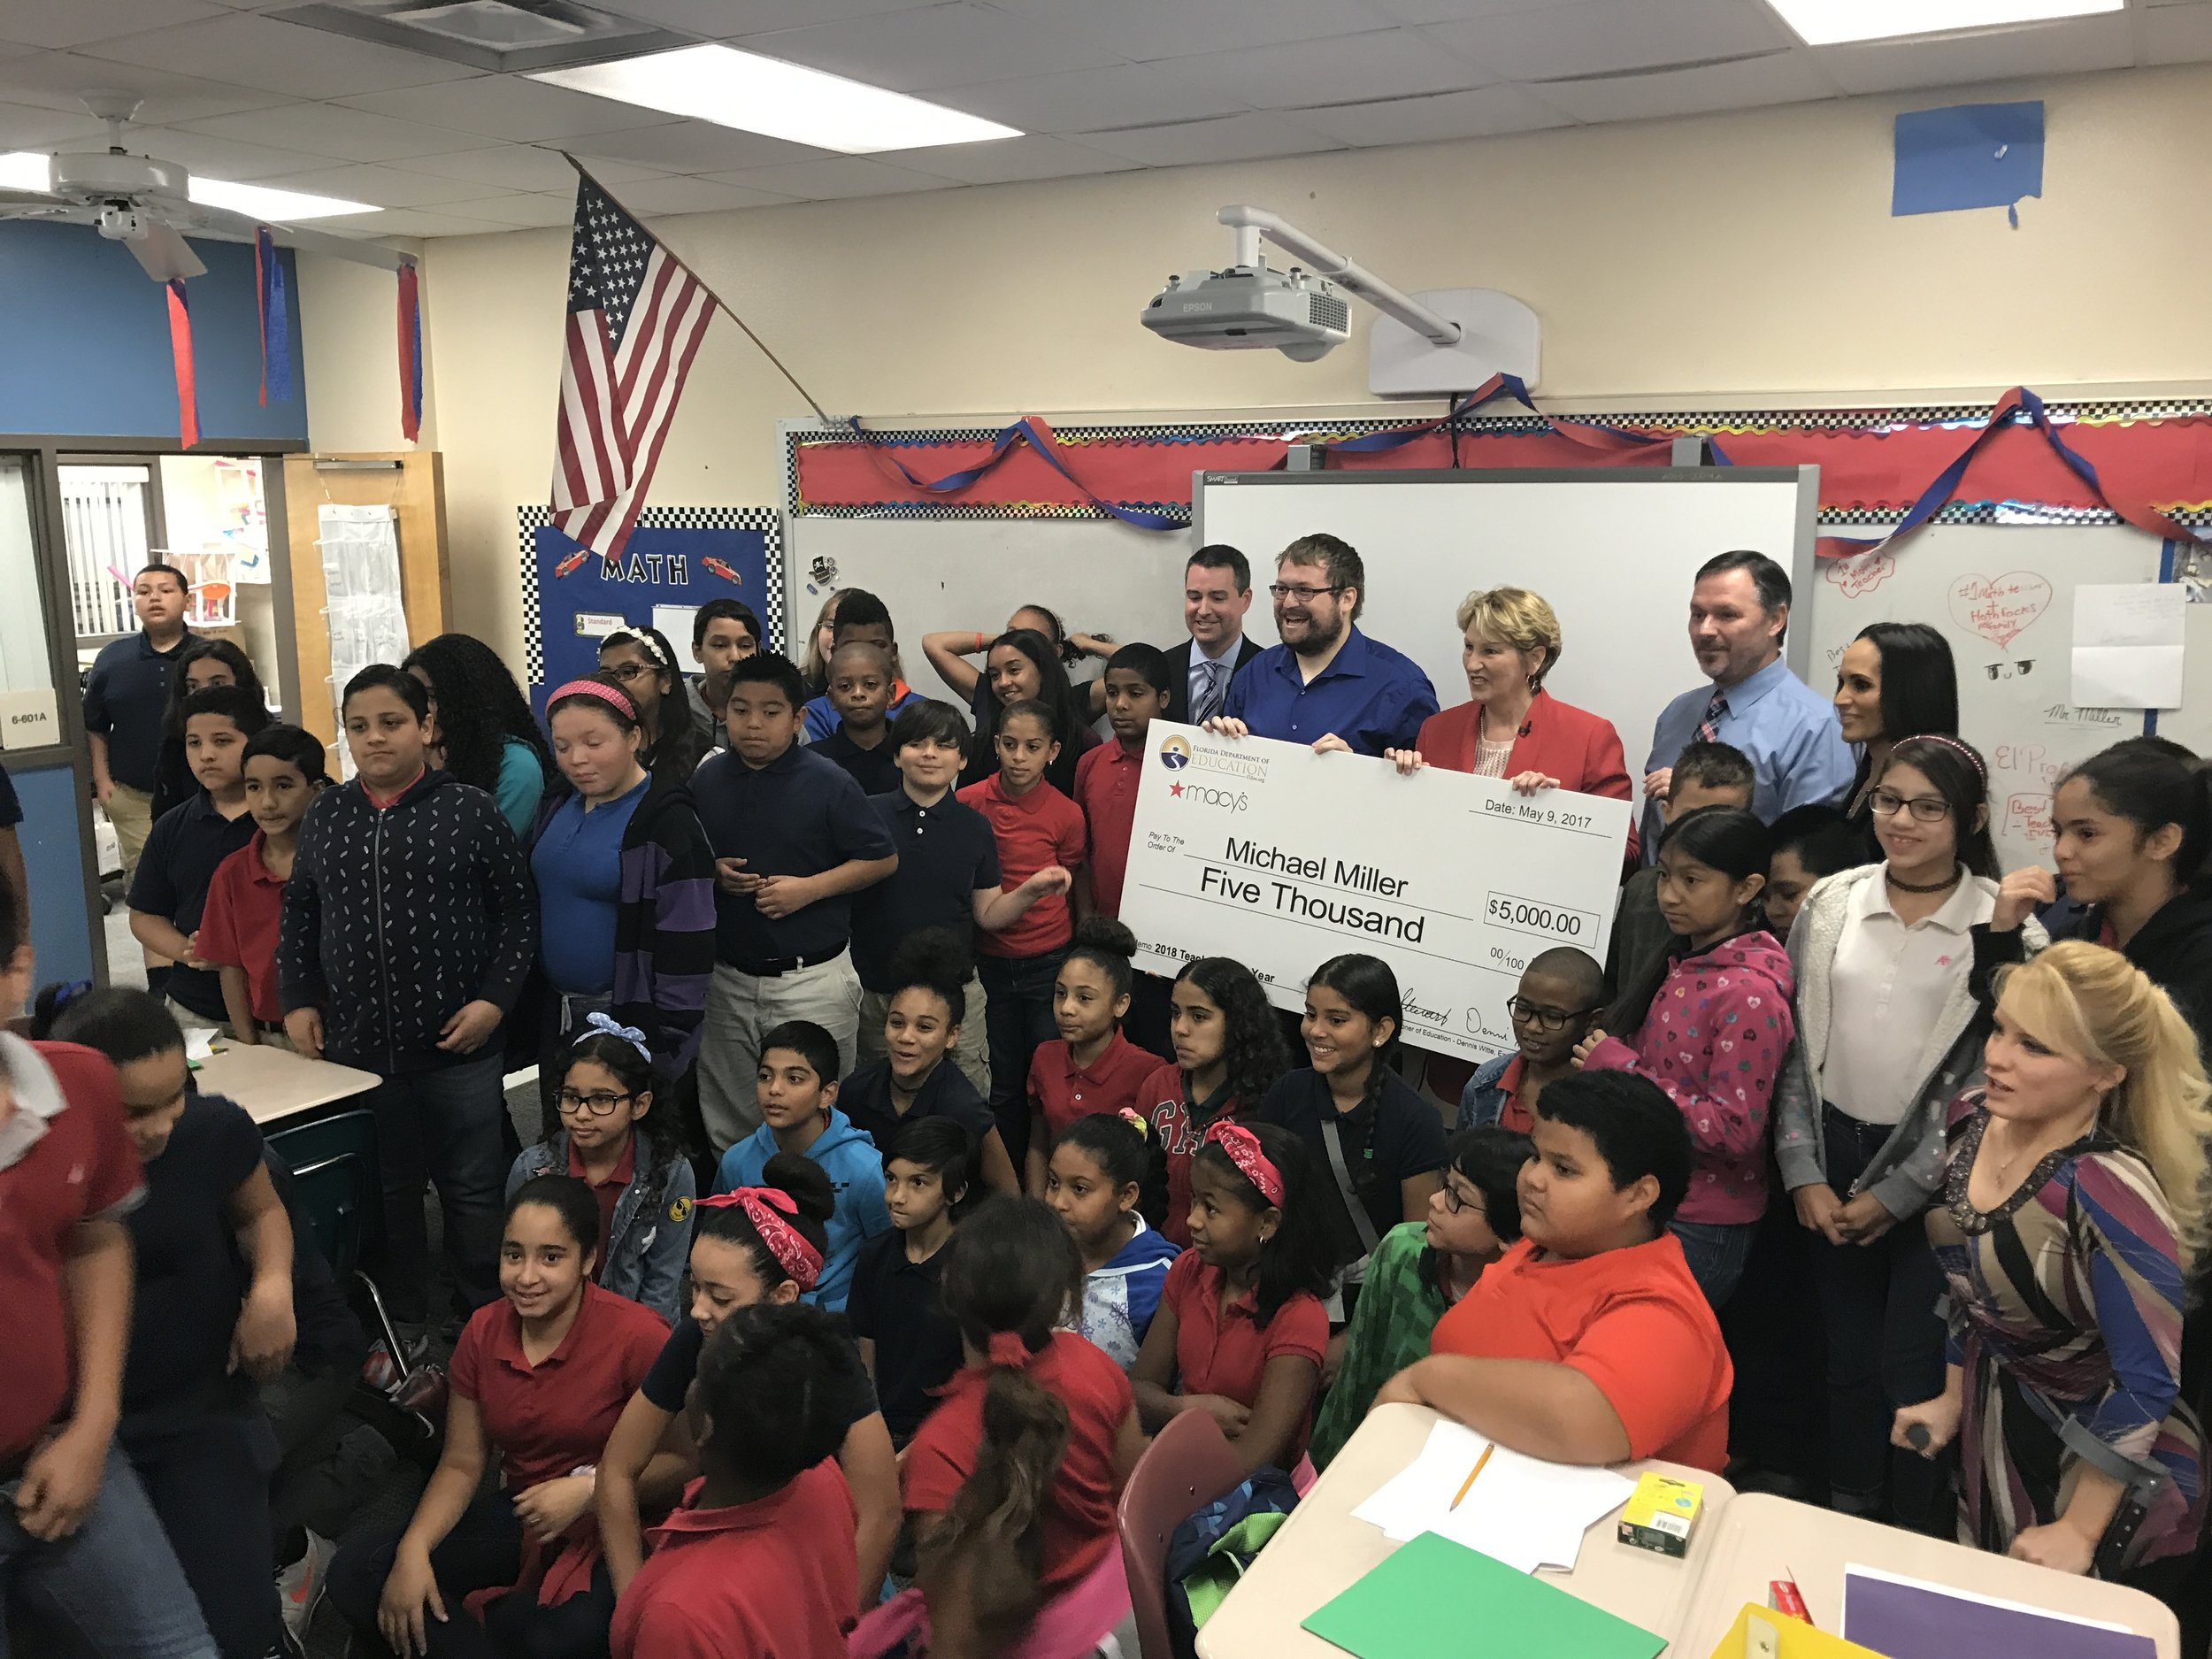 Osceola Elementary School Teacher Named Teacher of the Year Finalist and Receives $5,000 from Macy's and the Florida Department of Education